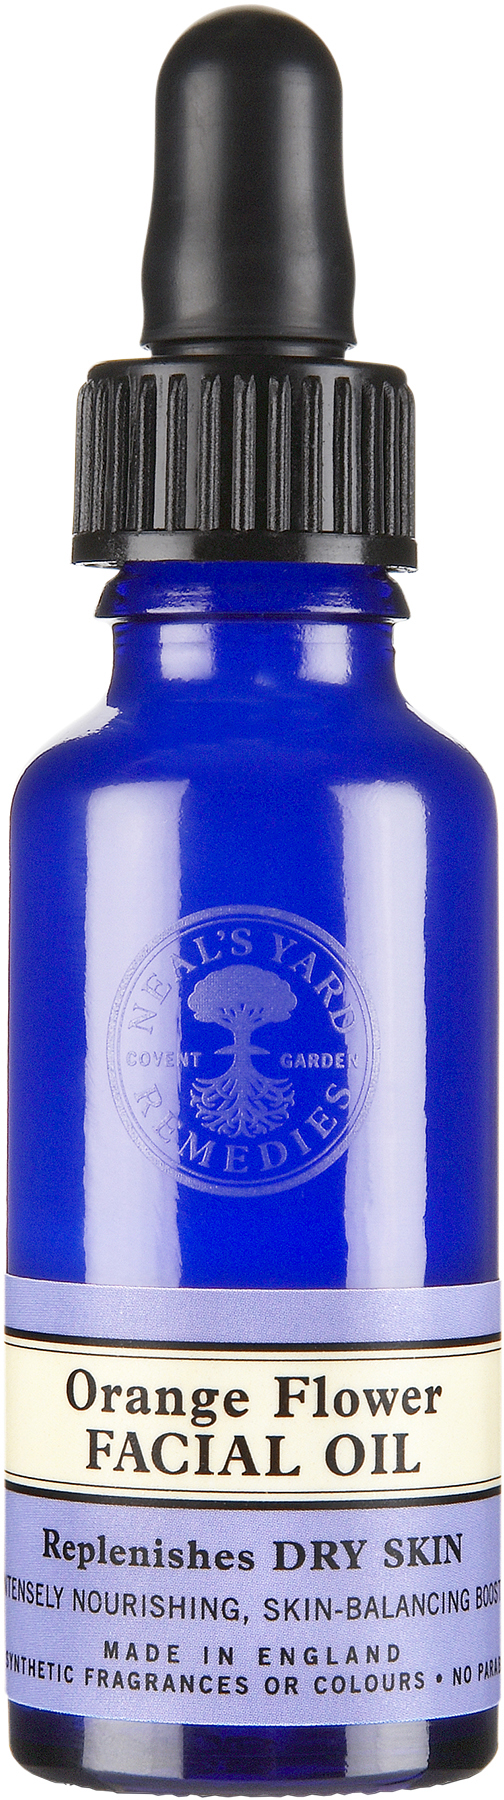 Neal's Yard Remedies - Orange Flower Facial Oil